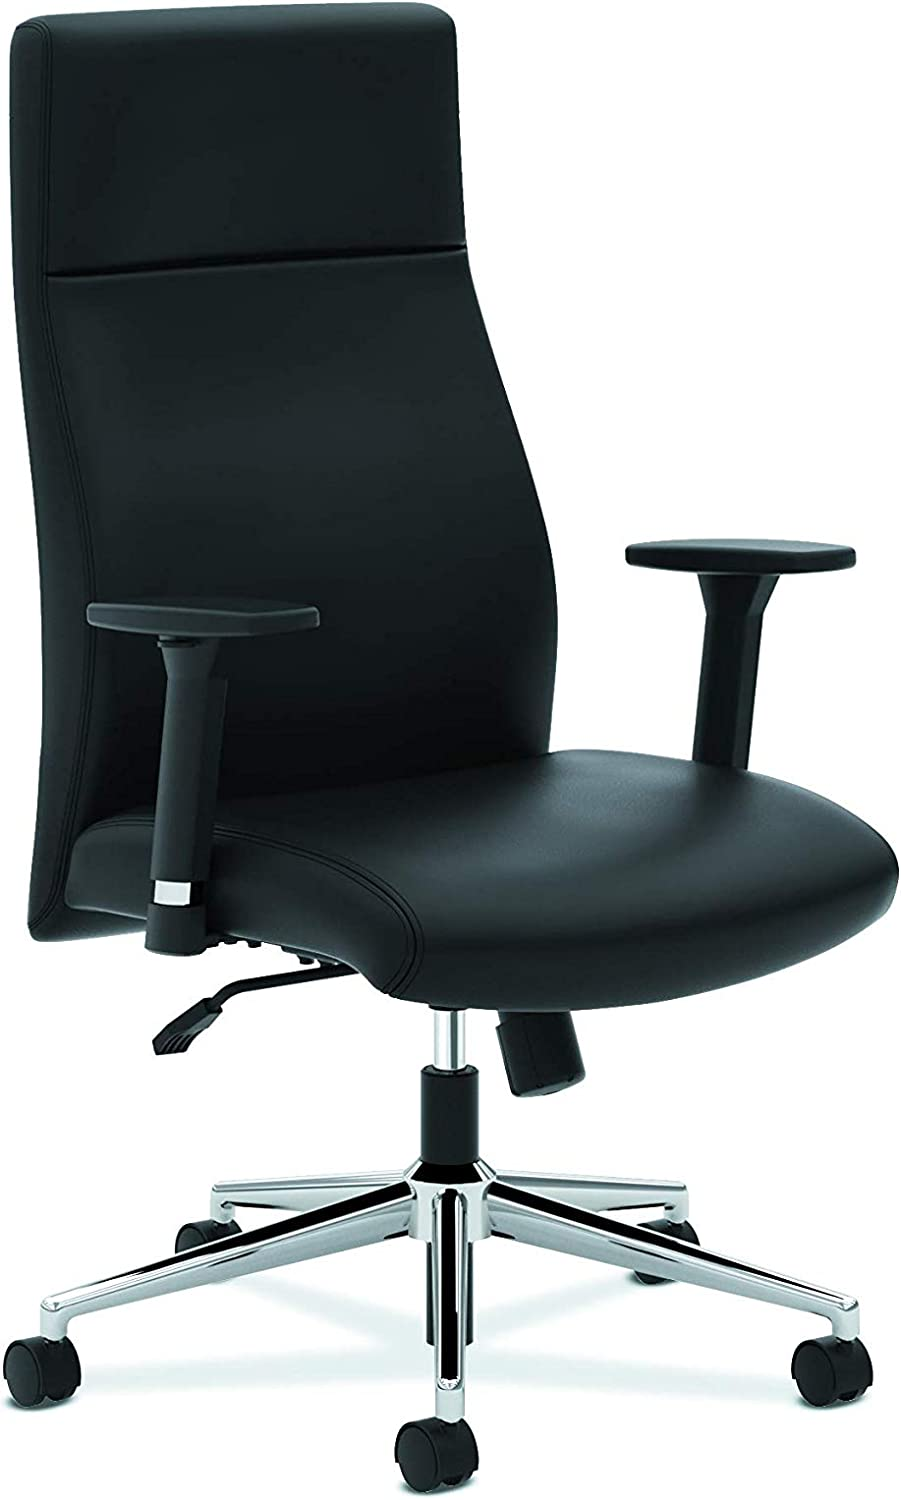 HON Define Executive Leather Chair - High-Back Office Chair for Computer Desk, Black (HVL108)